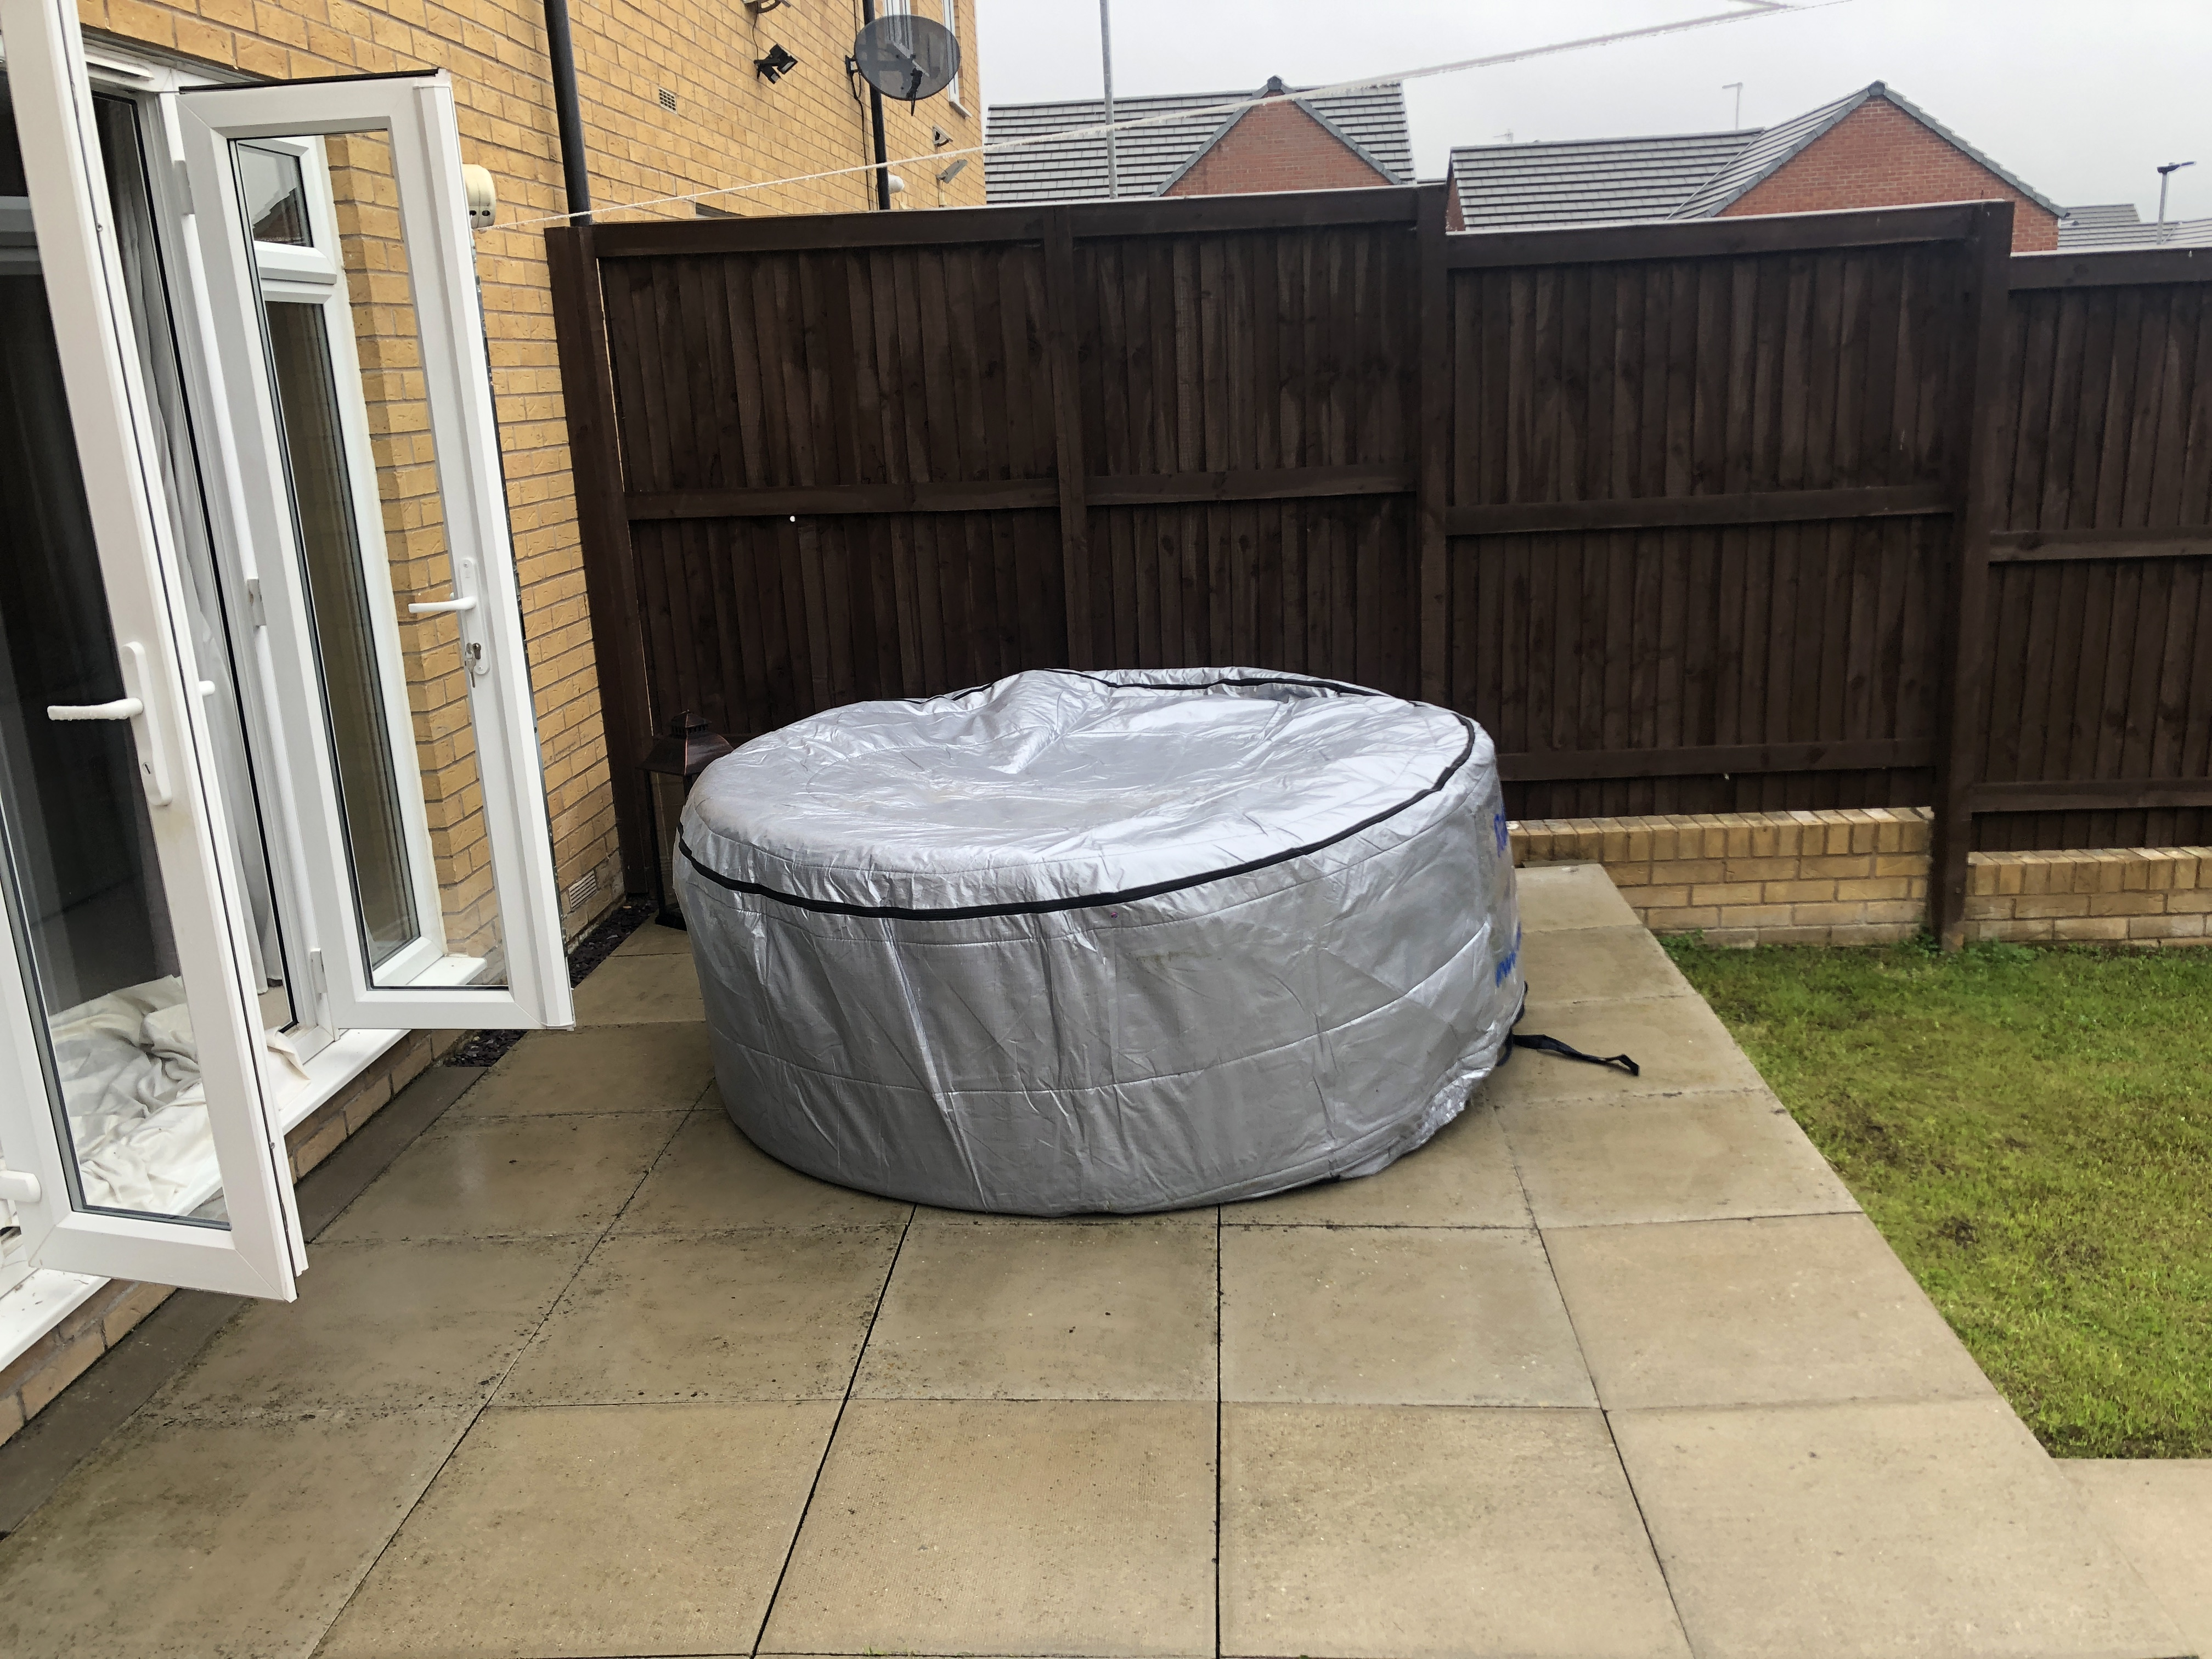 cover Rotospa Orbis Eazy Hot Tub Hire Yorkshire hot tub rotherham Sheffield Barnsley Doncaster Wakef